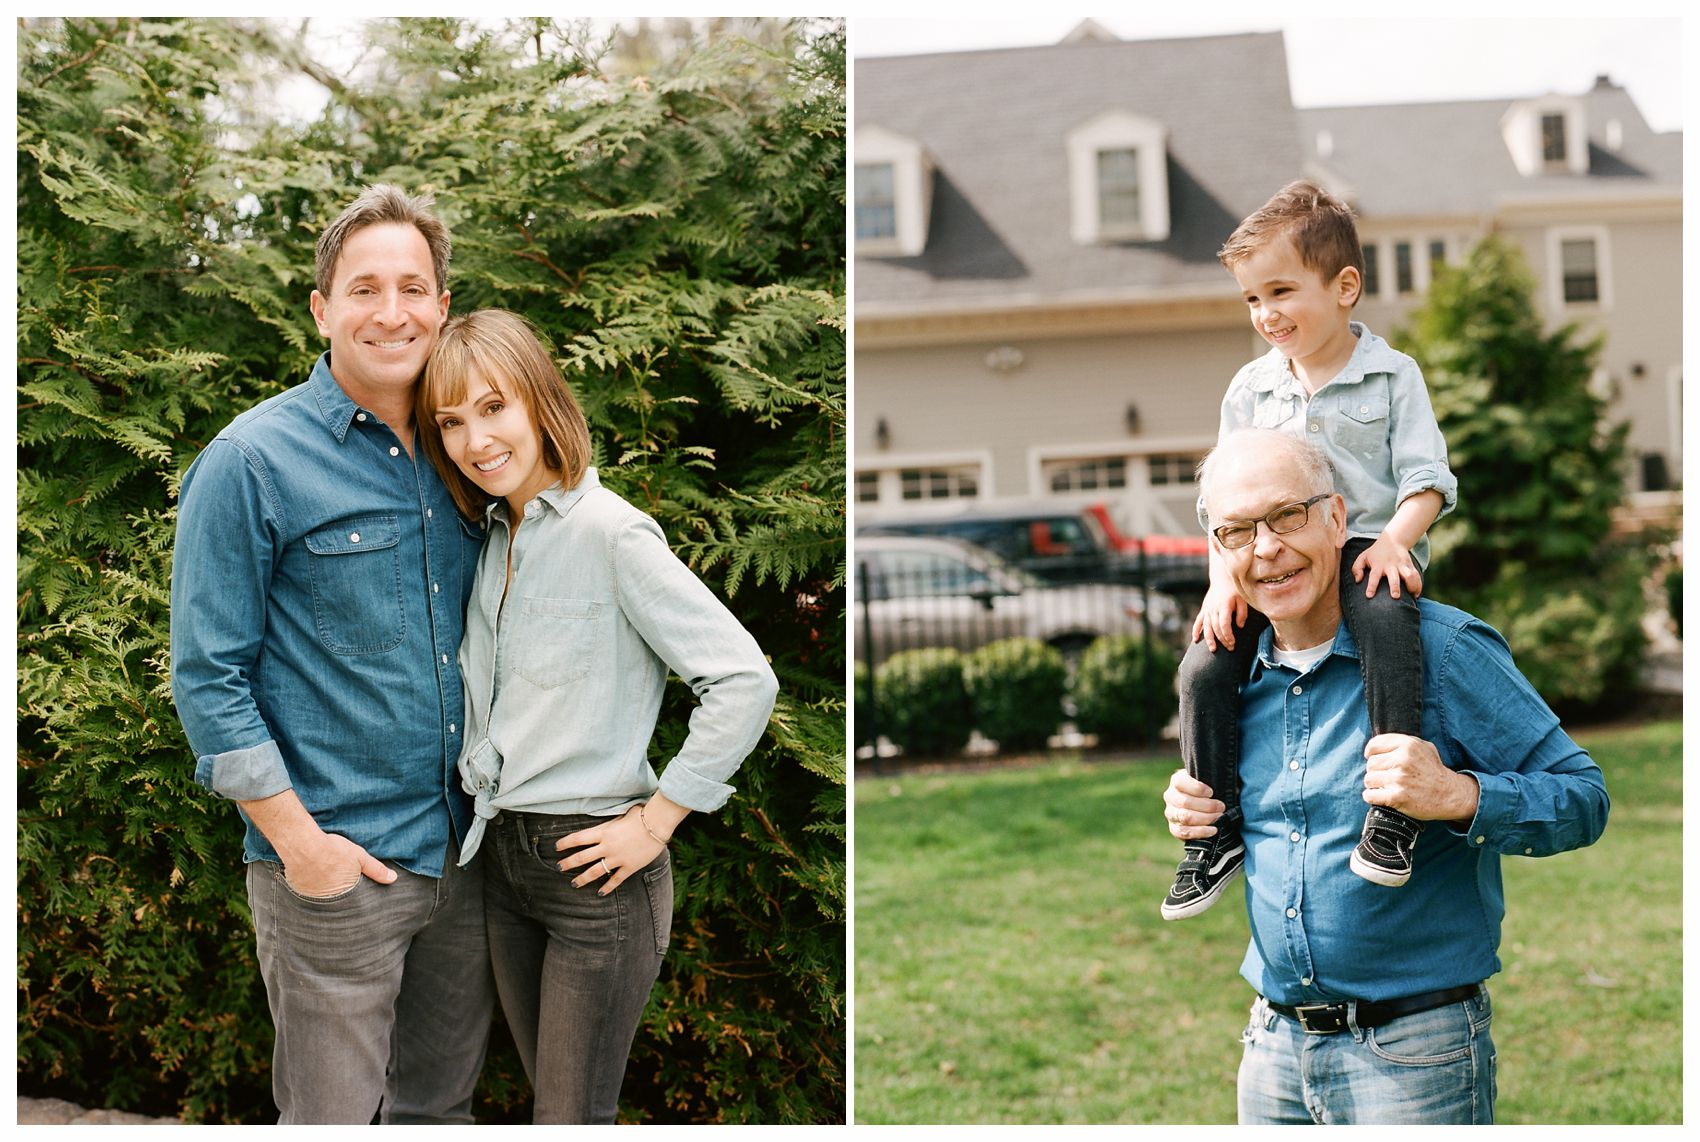 Best NYC Family Photographer Miriam Dubinsky is taking a photo of a happy grandfather is holding his cute grandson on the shoulders with mom and dad next to them in the garden